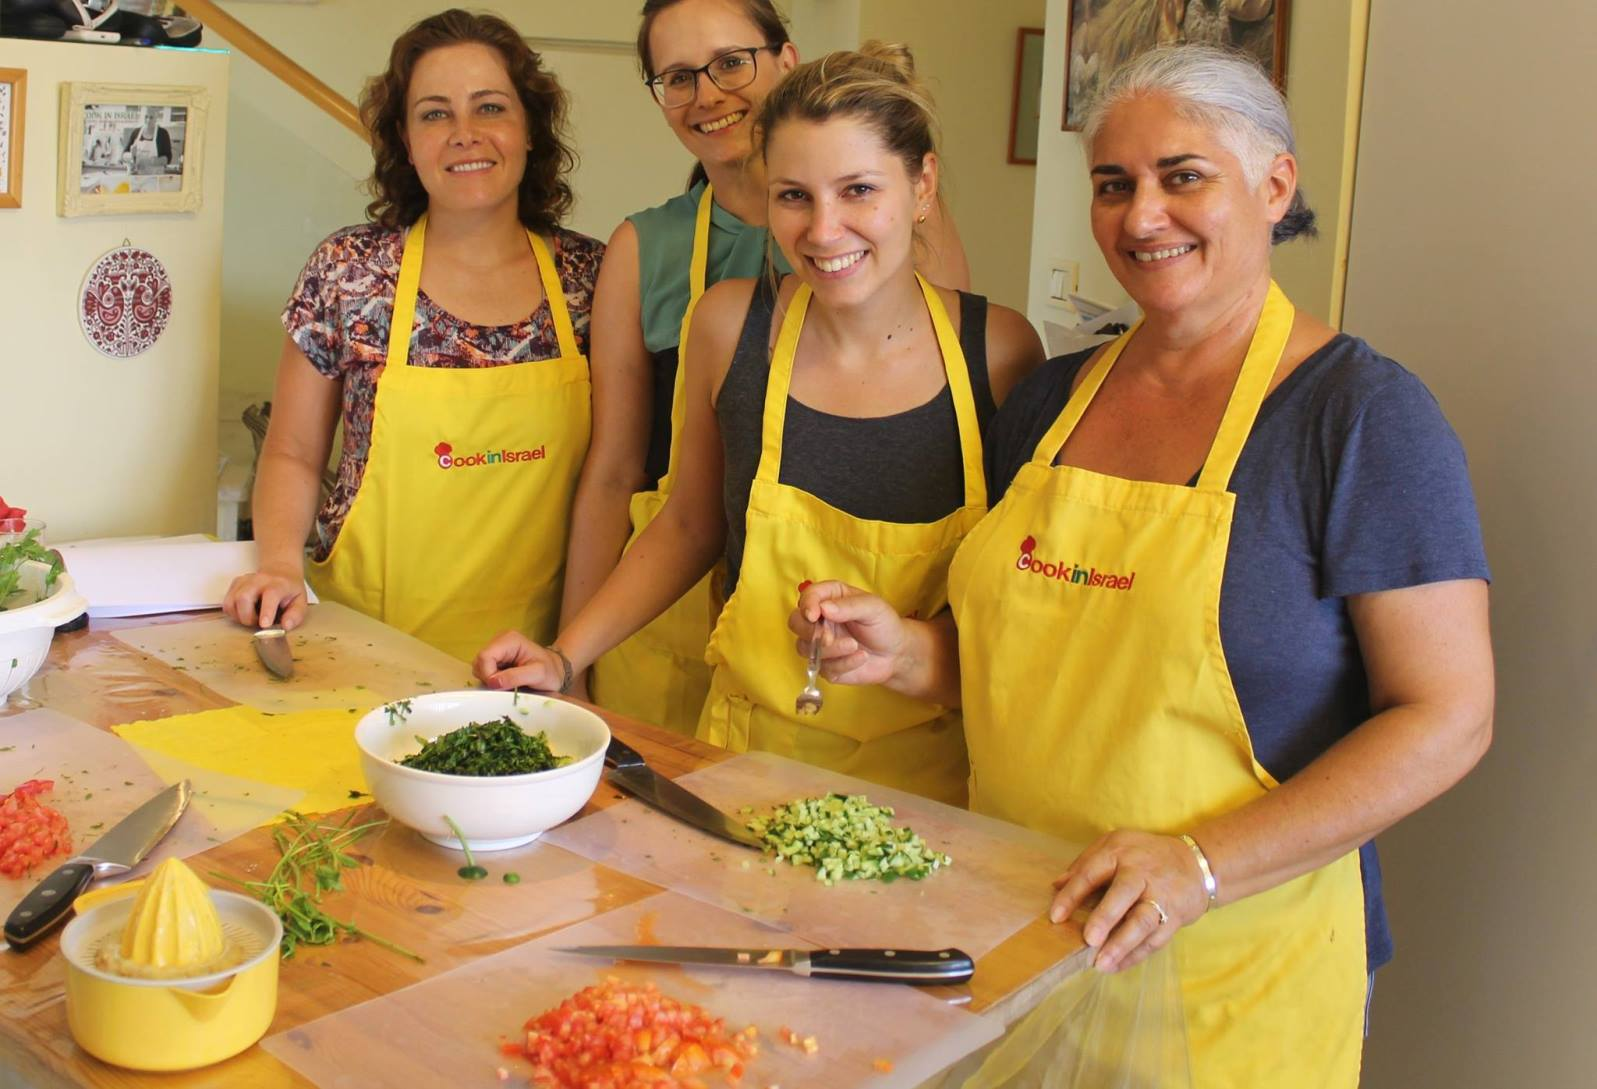 Orly Ziv, right, with guests on her Cook in Israel tour and workshop. Photo via Facebook